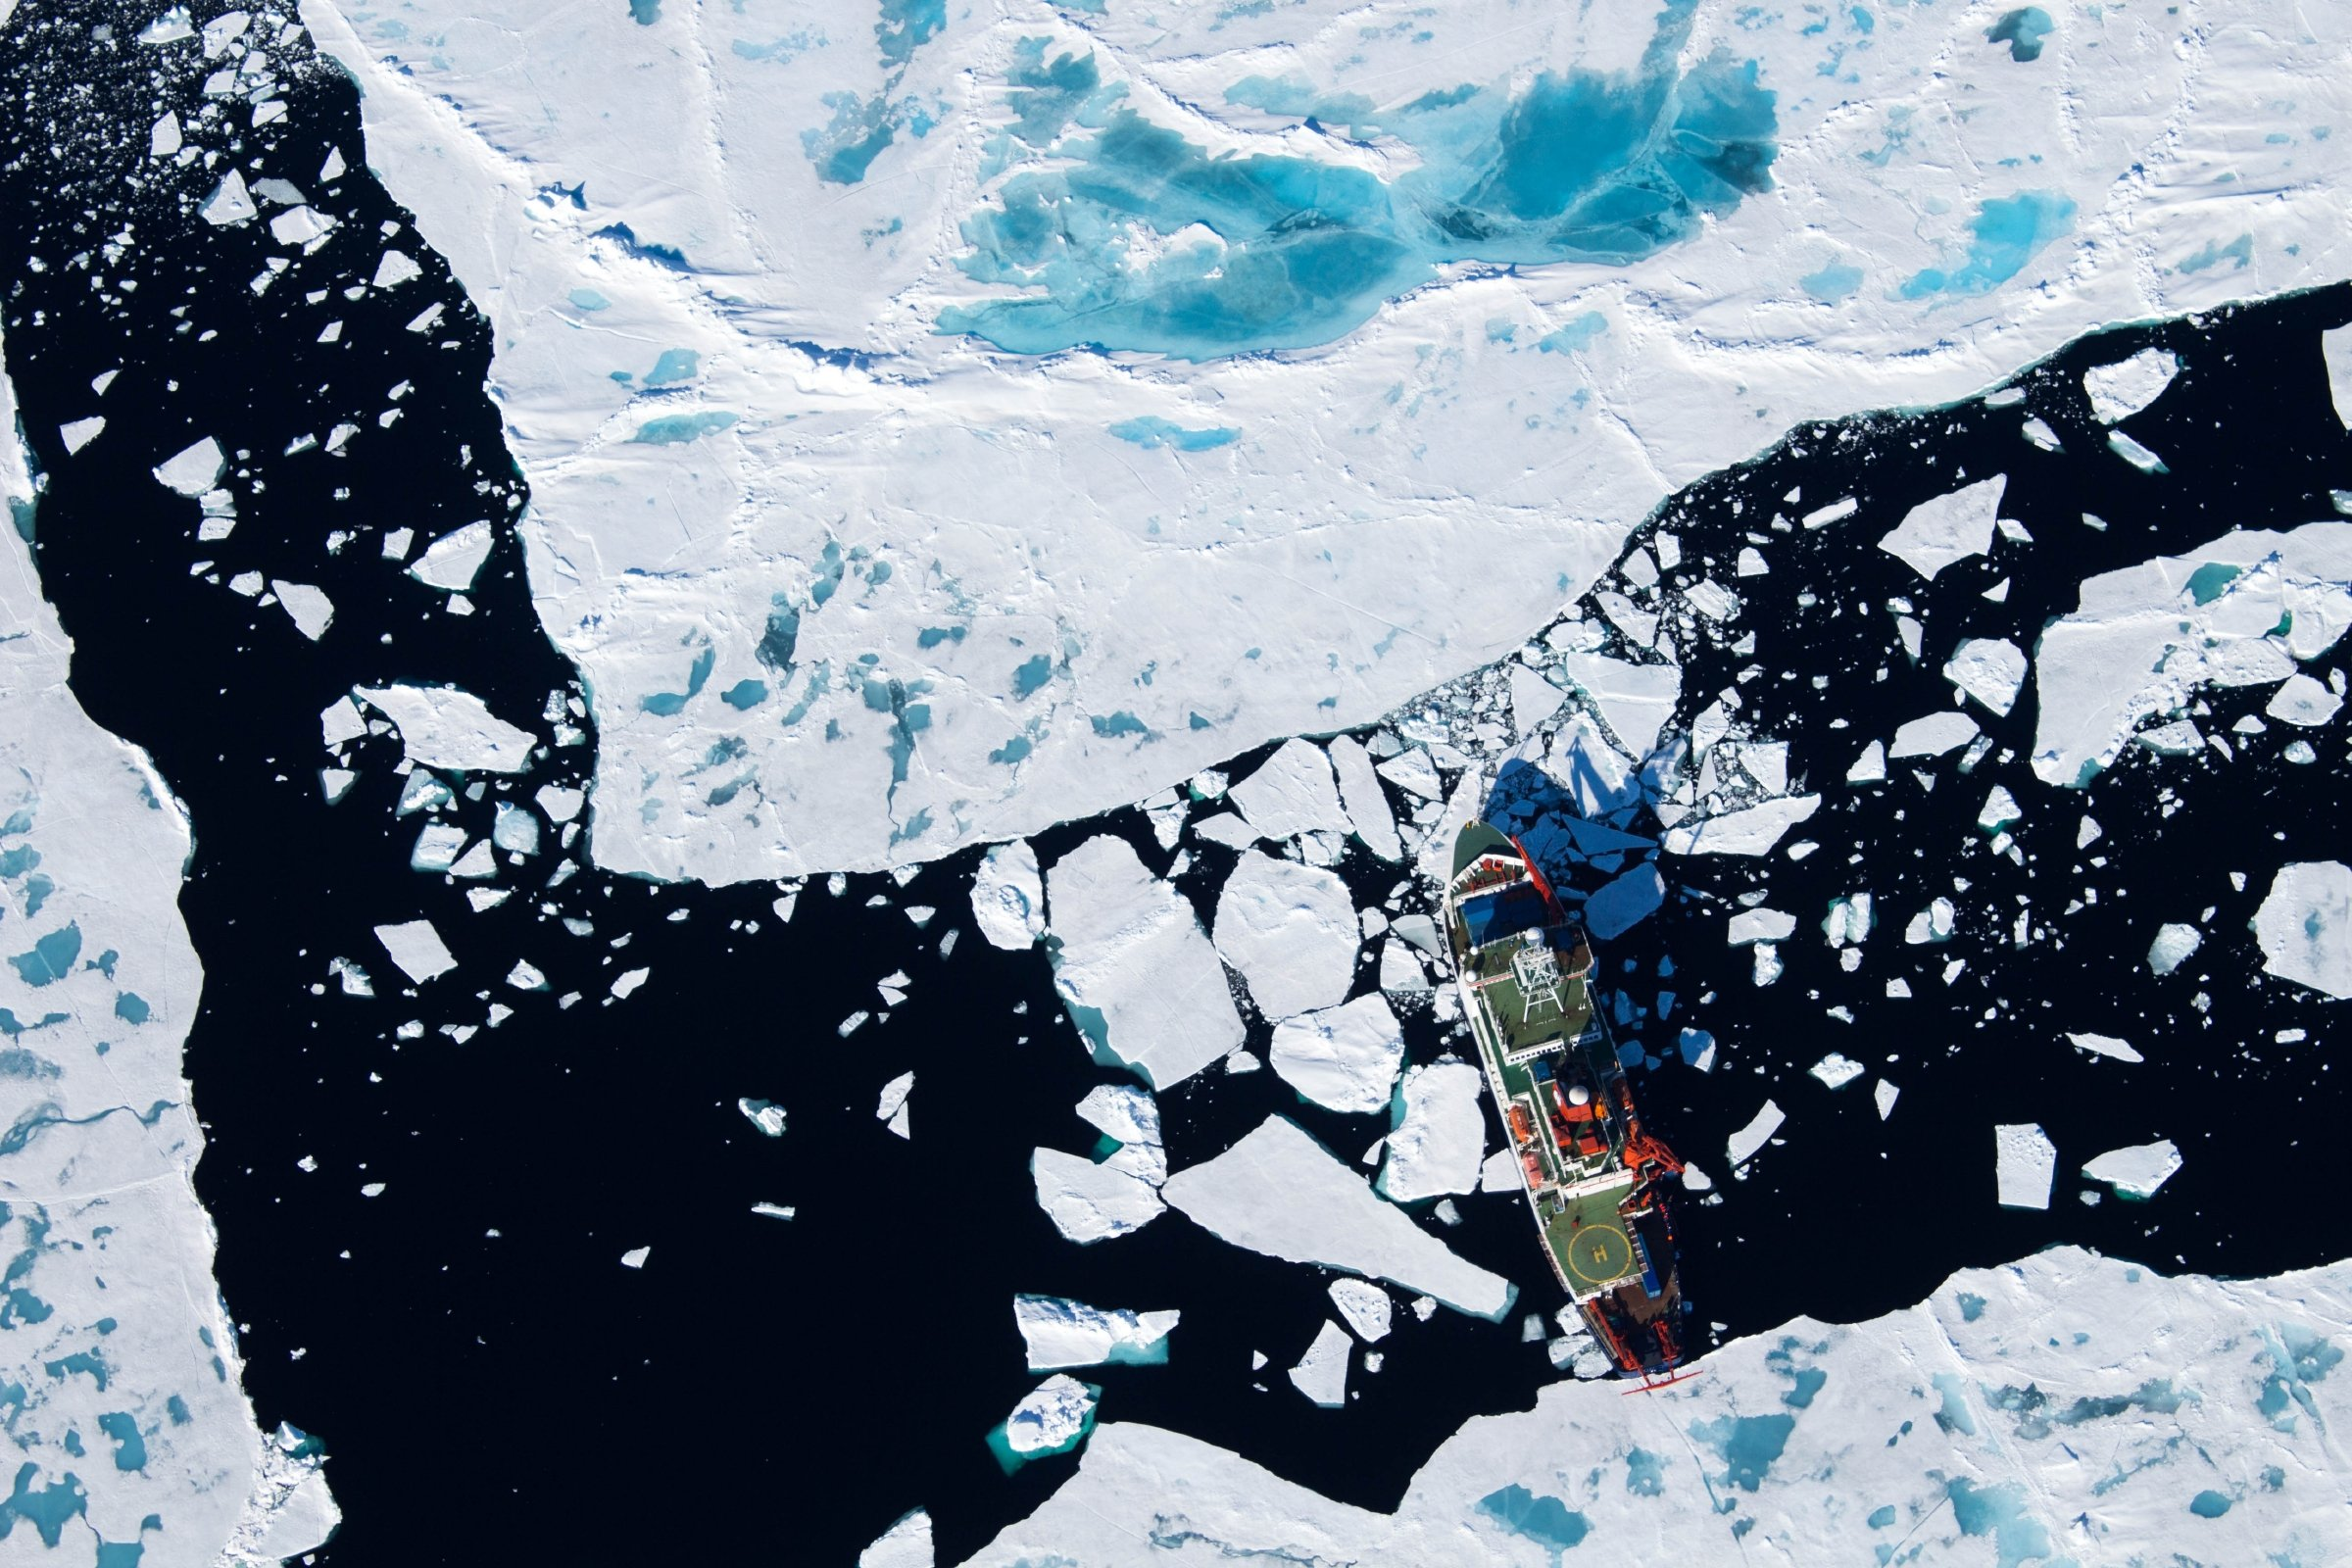 125,000 years ago, the central Arctic was covered by summer sea ice – even though temperatures were higher